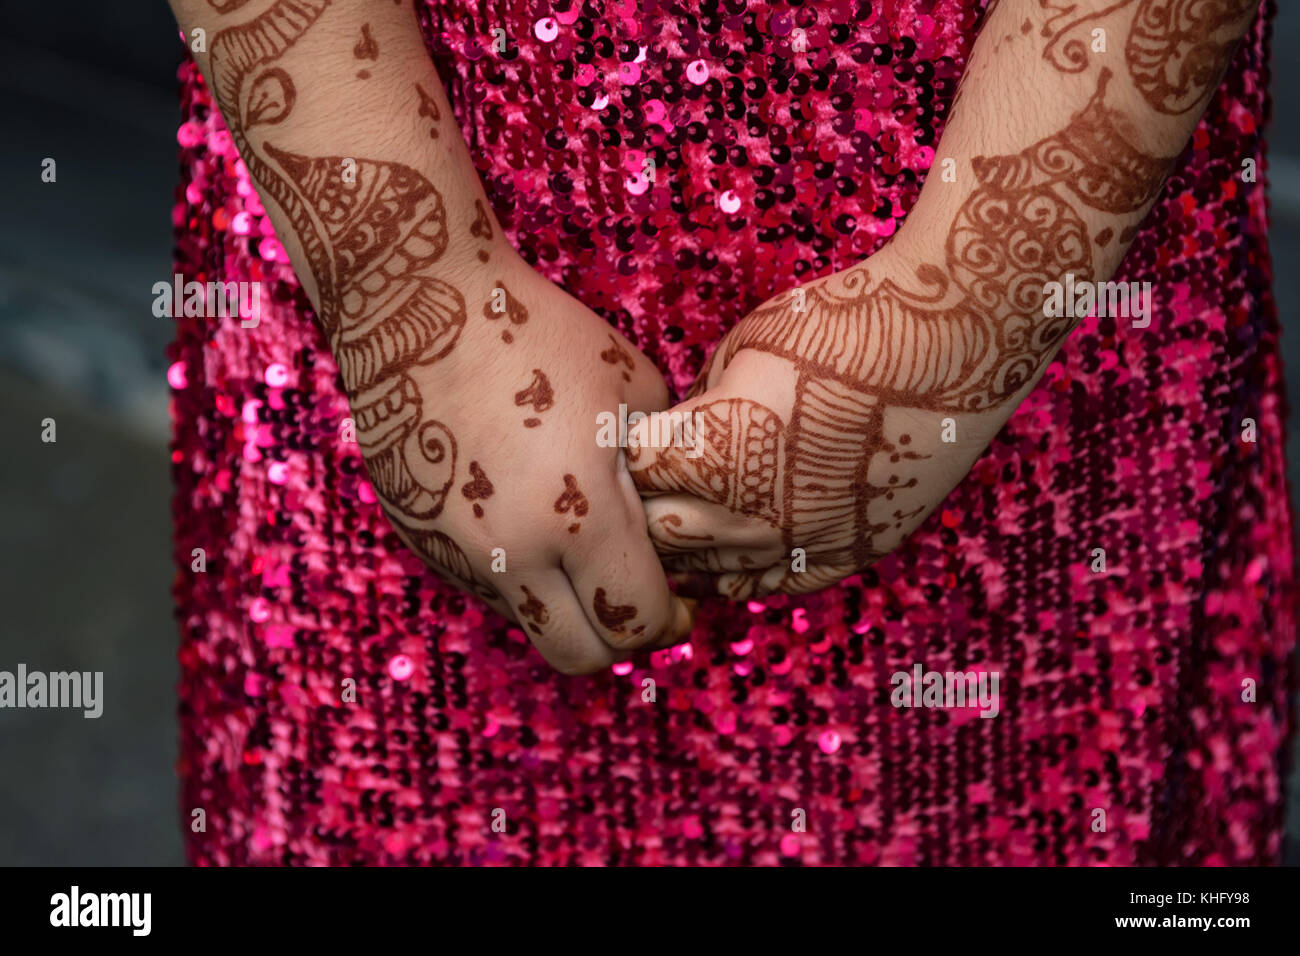 Mehndi Hands With Mobile : Mehendi stock photos & images alamy